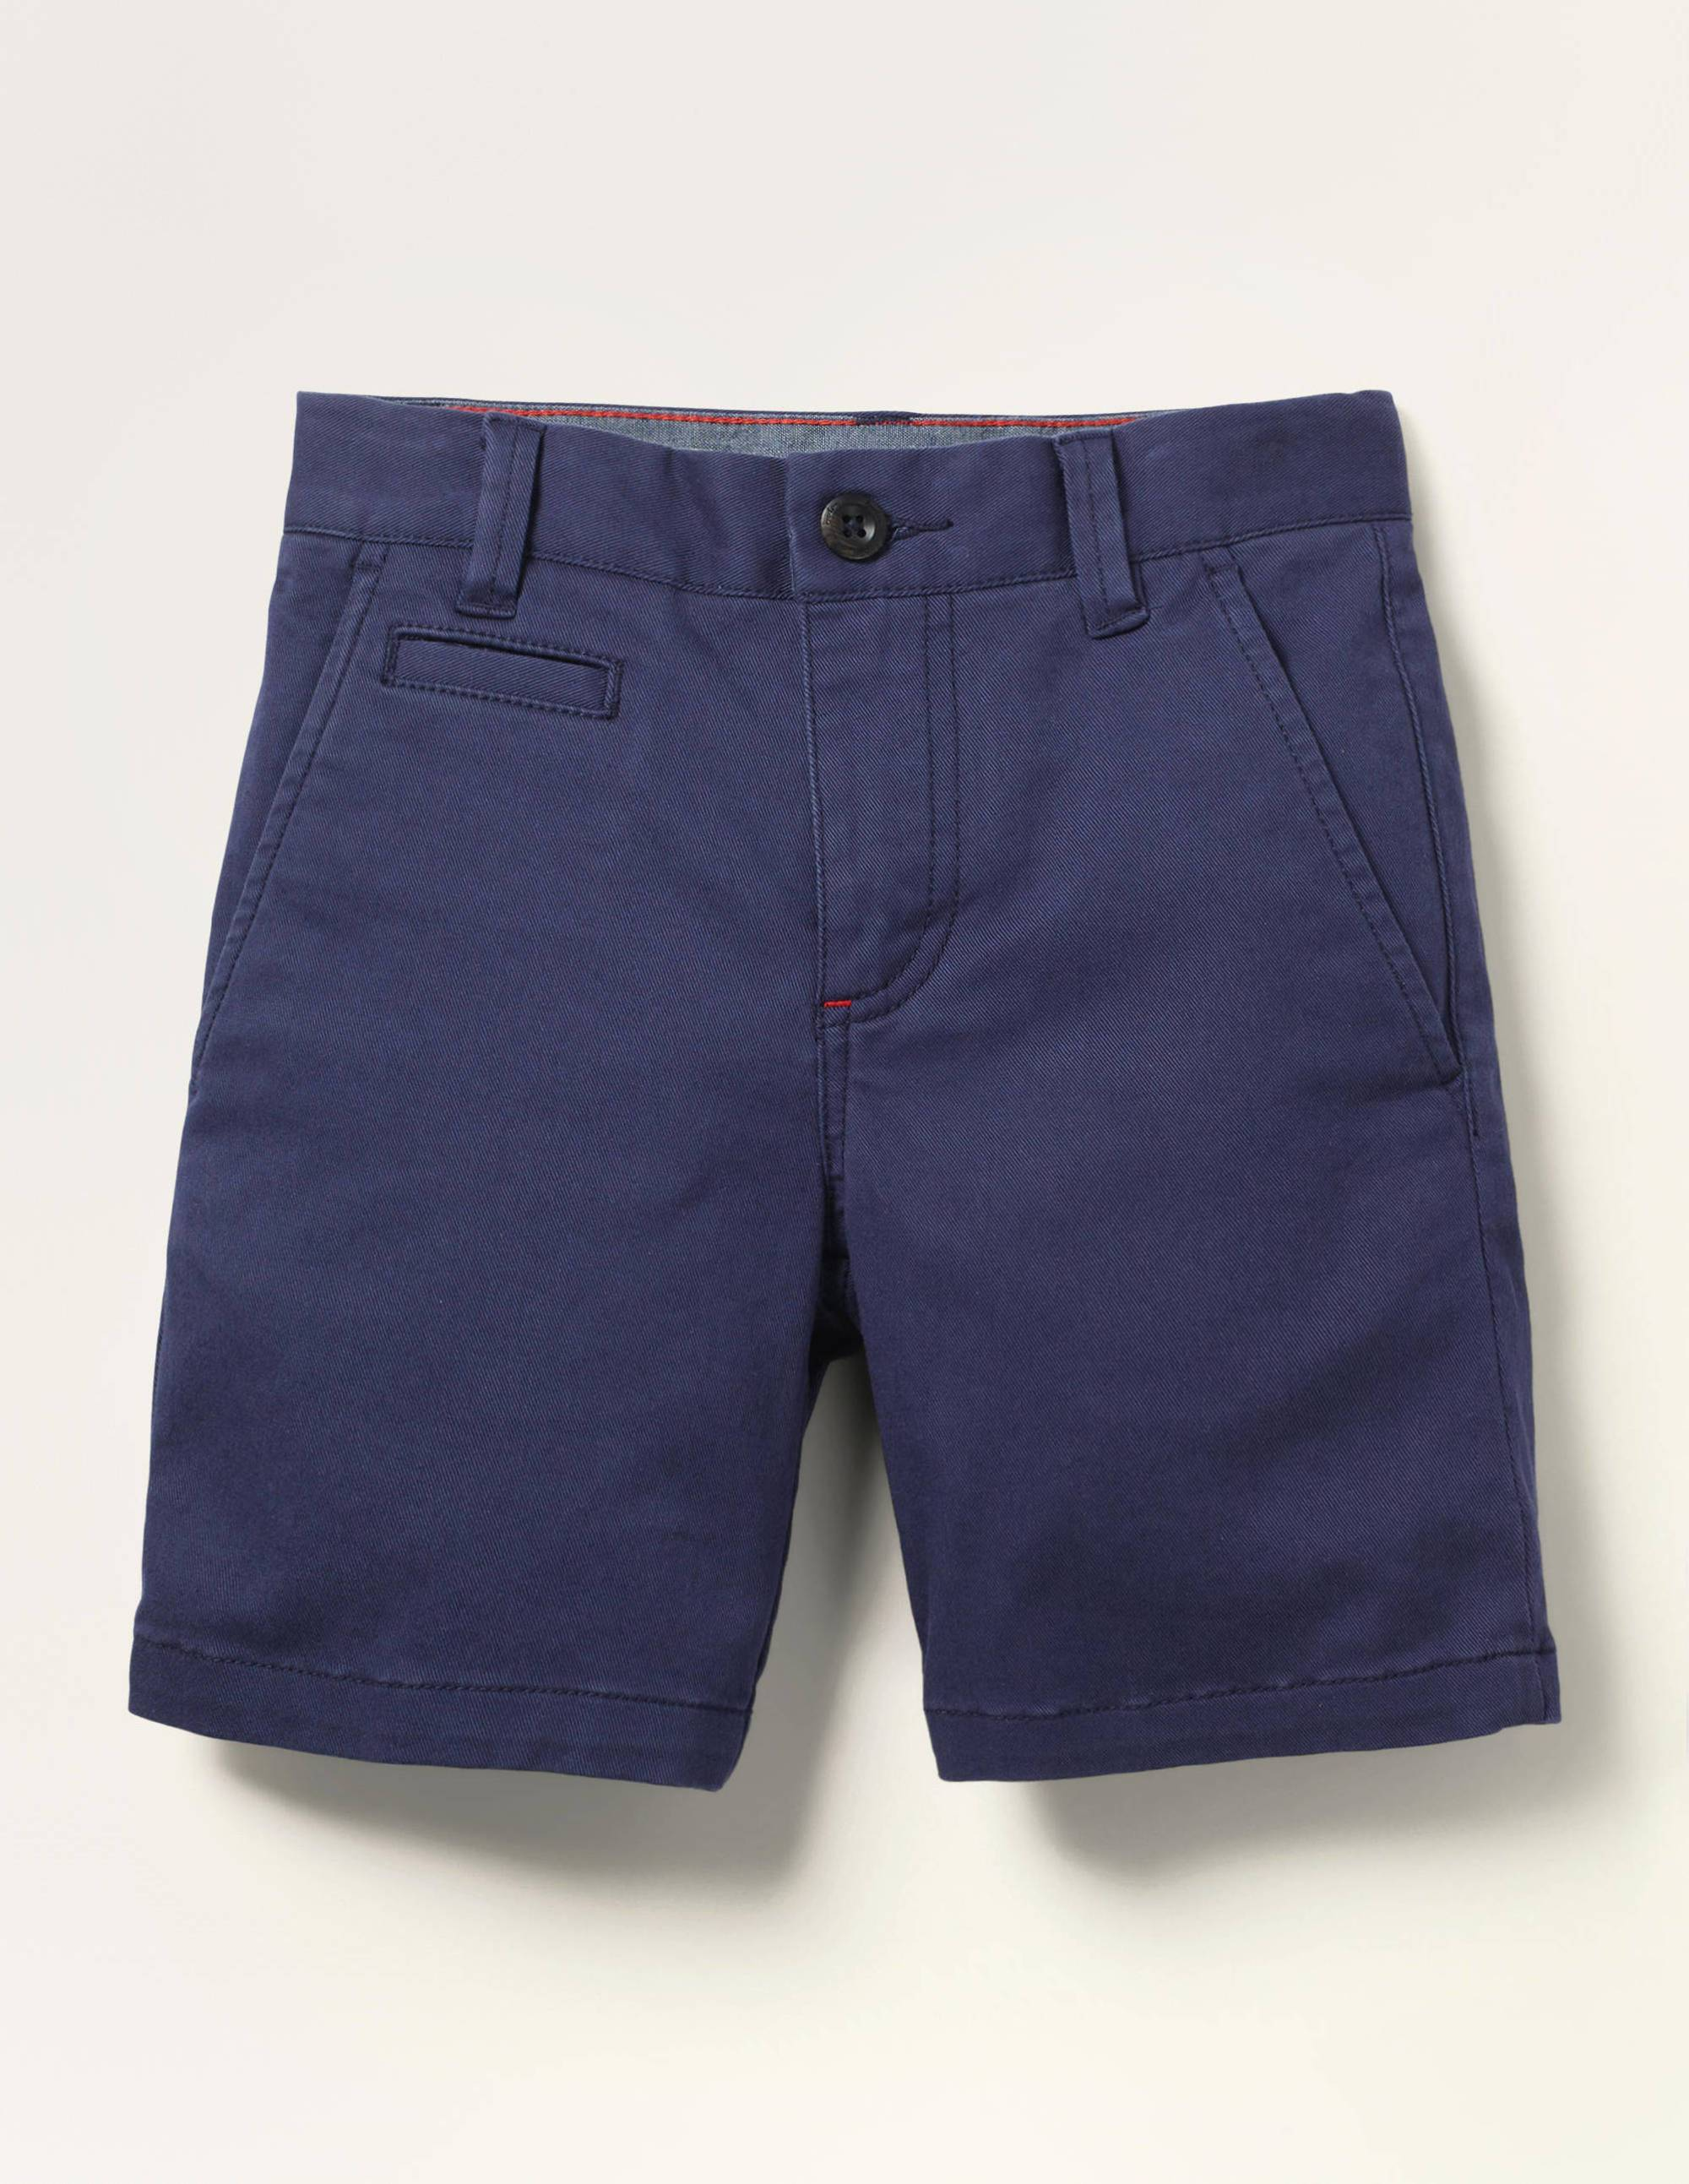 Mini Short chino NAV Femme Boden, Blue - 15a